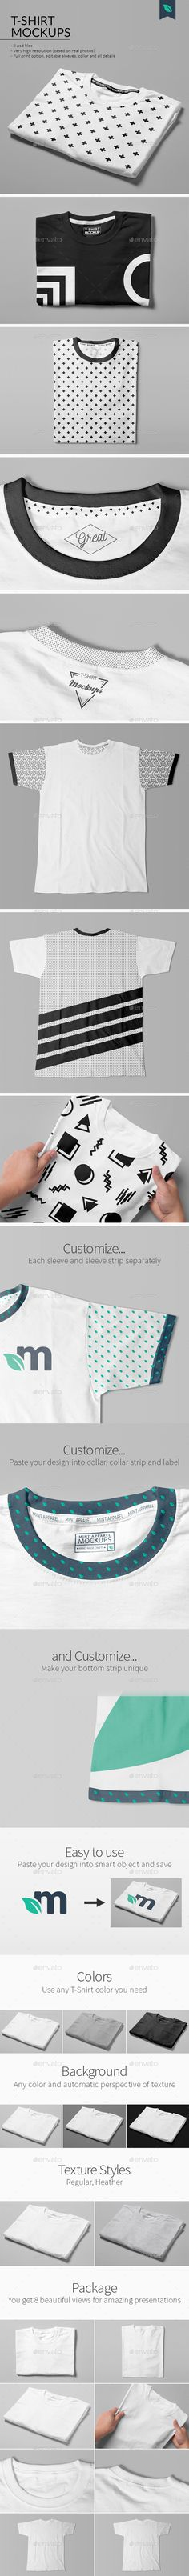 T-Shirt Mockups Studio Edition by MintMockups Professional set of 8 T-Shirt Mockups based on real photos. Amazing and realistic results achieved in seconds. Endless customizati